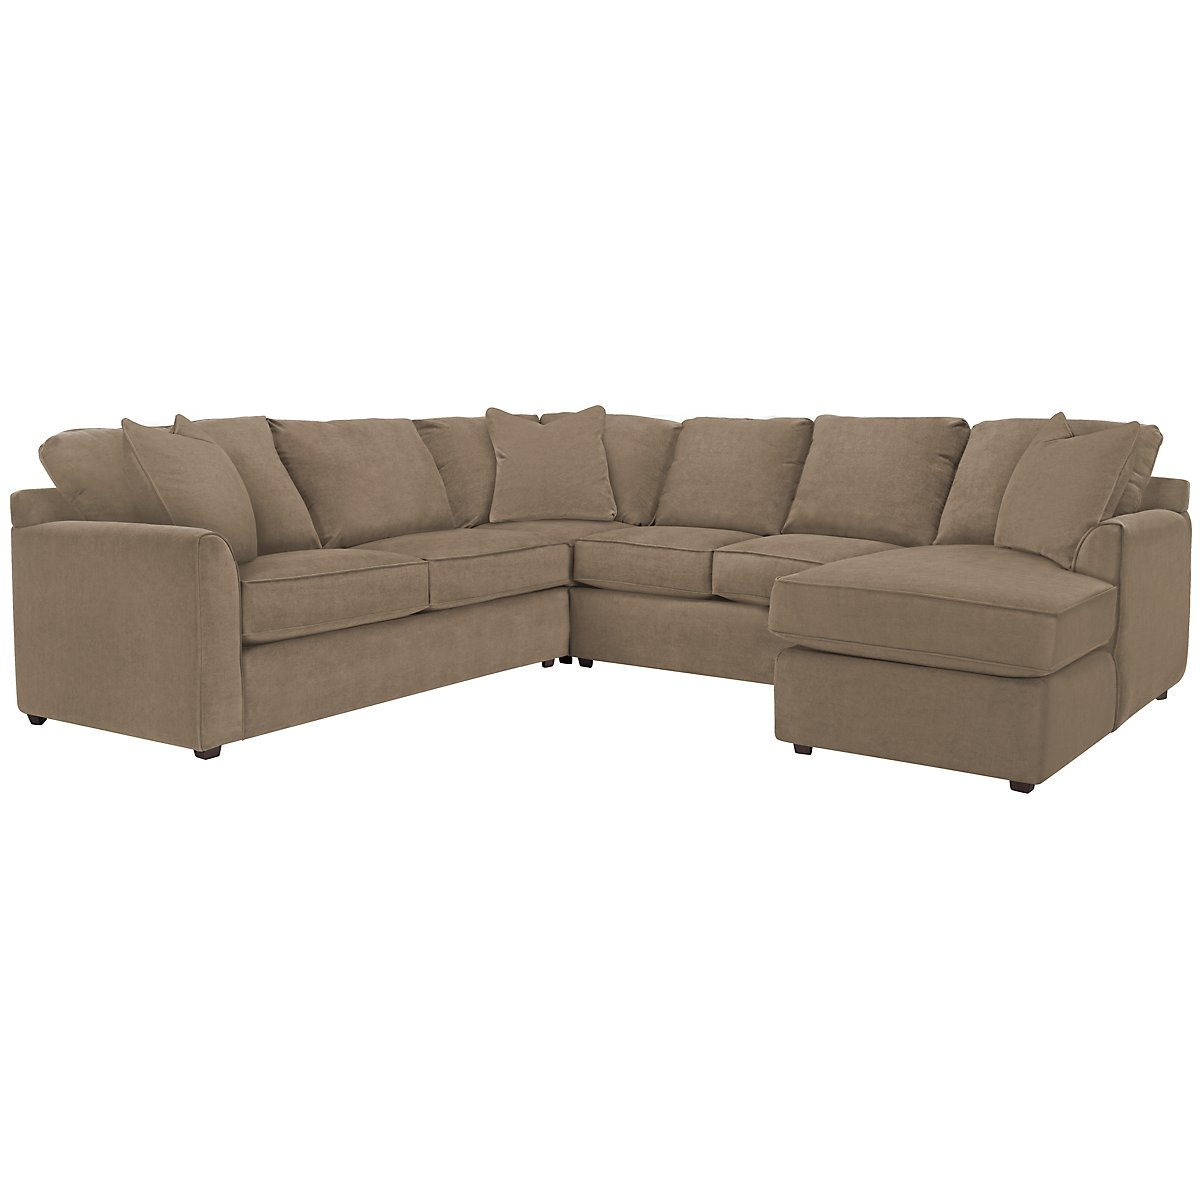 Express3 Light Brown Microfiber Small Right Chaise Sectional